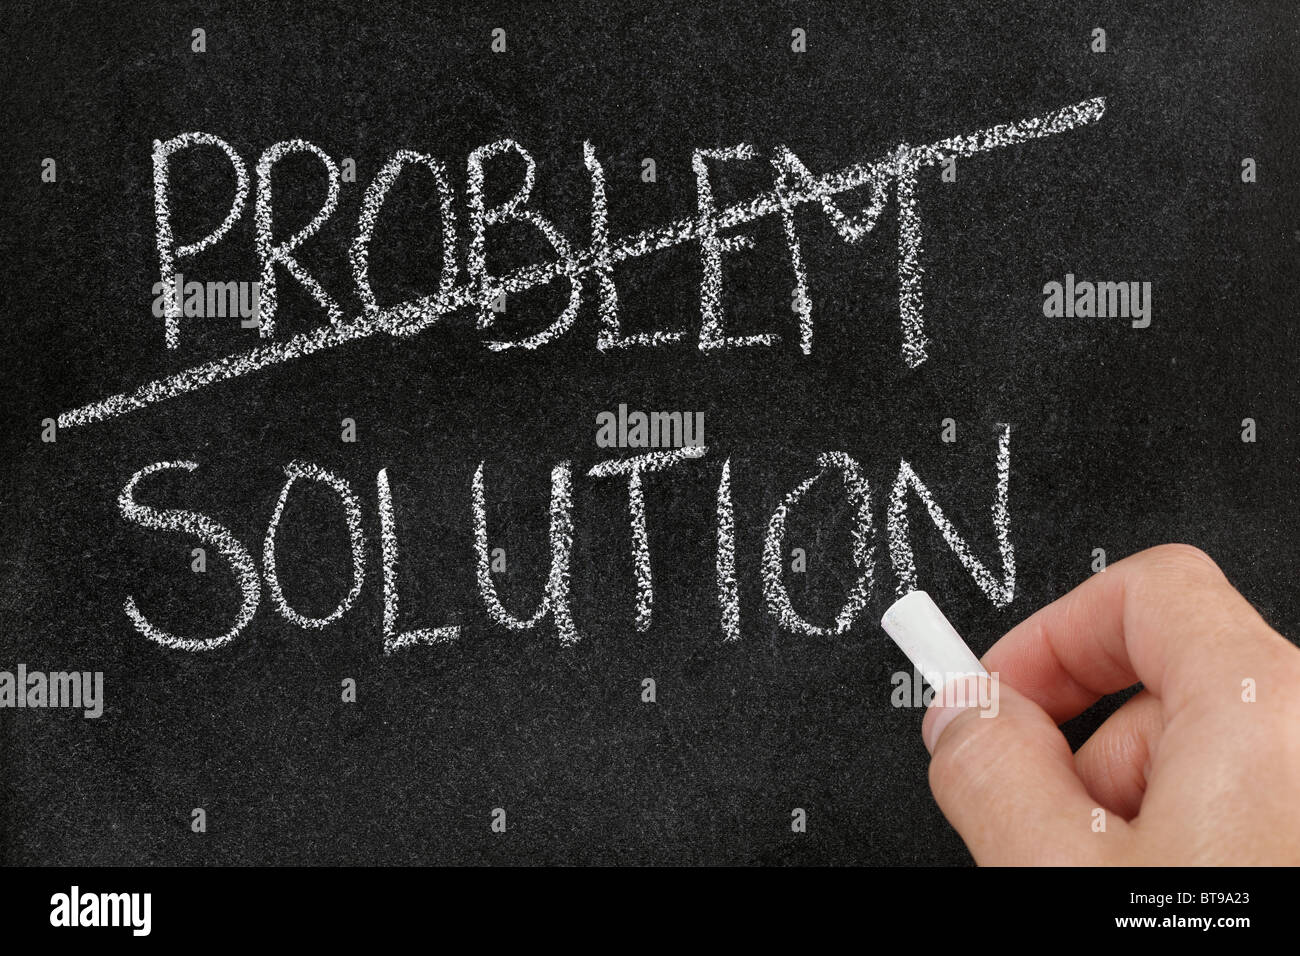 Finding the solution to a problem - Stock Image